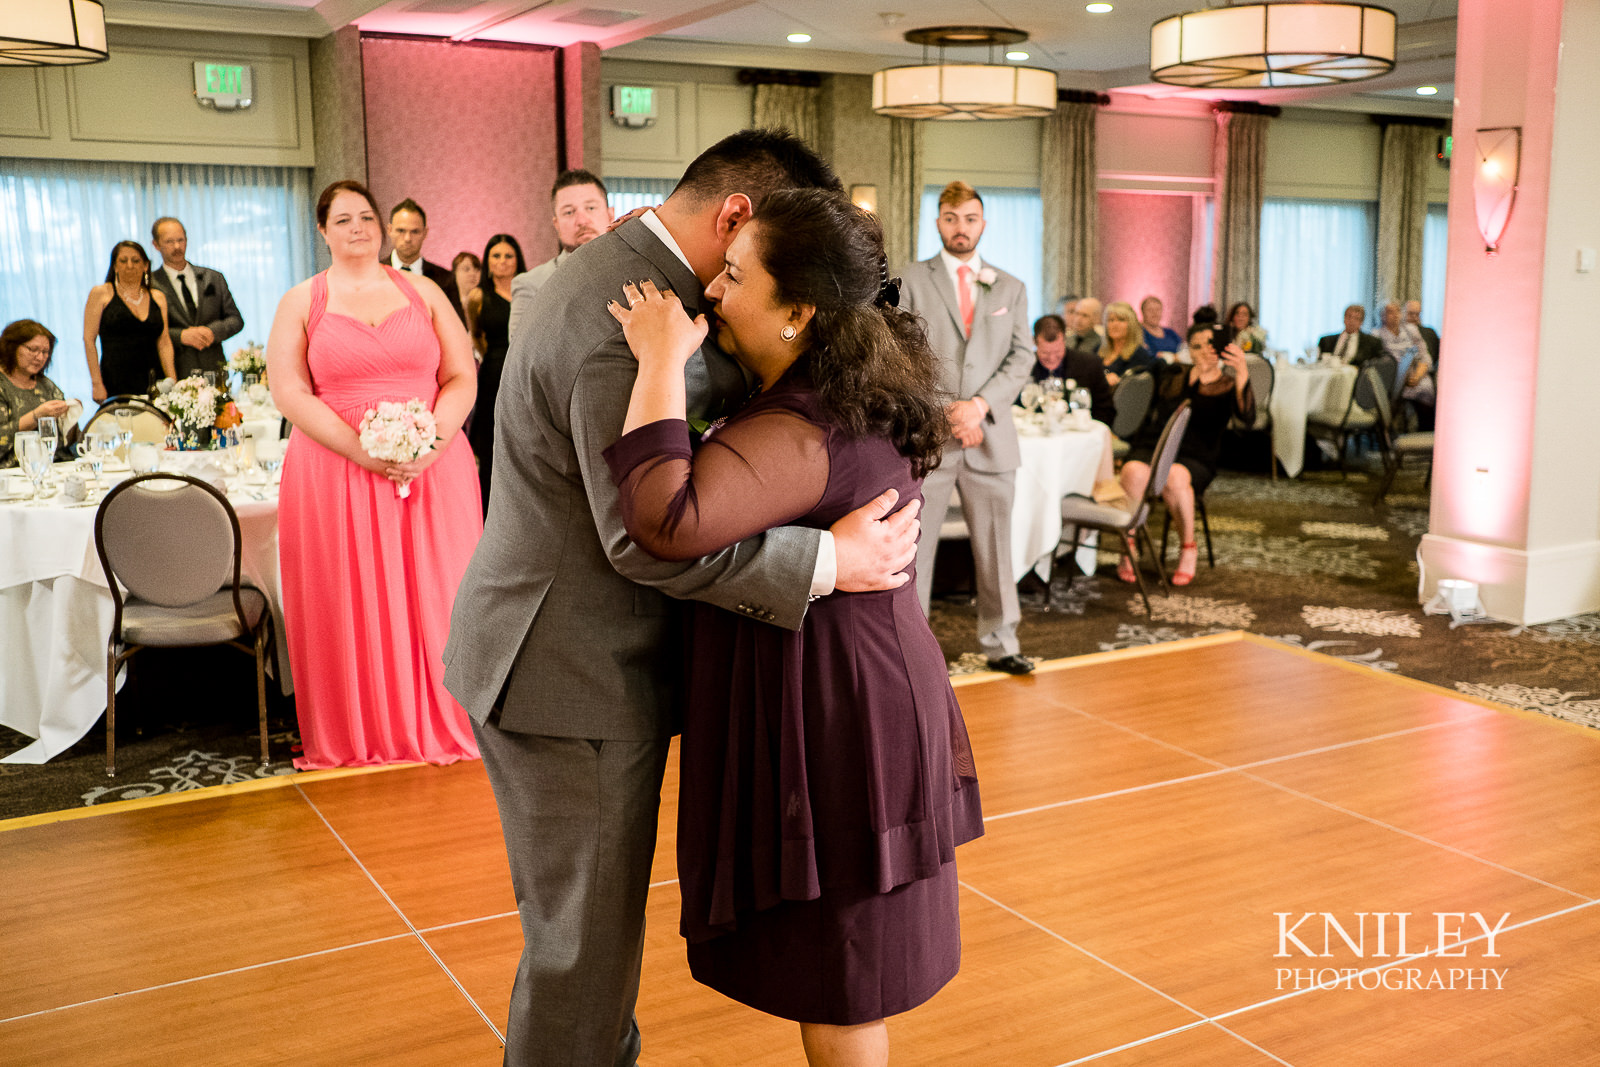 085 - Woodcliff Hotel - Rochester NY wedding photo - Kniley Photography.jpg